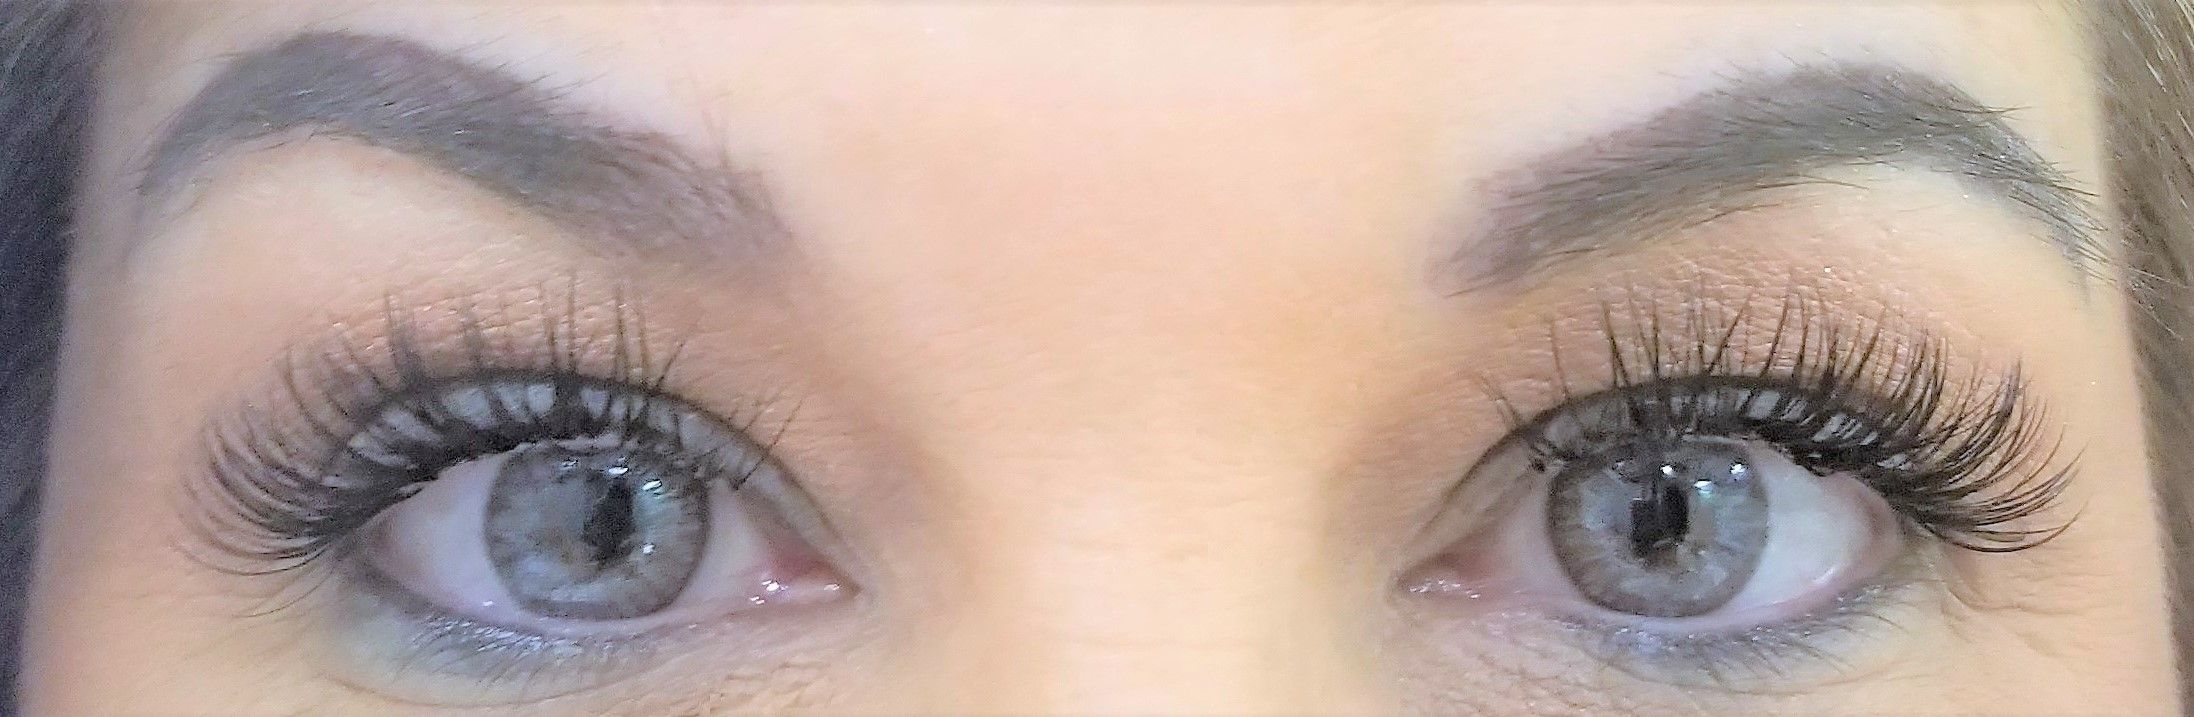 Trendy Lash Styles provides eyelash extensions and